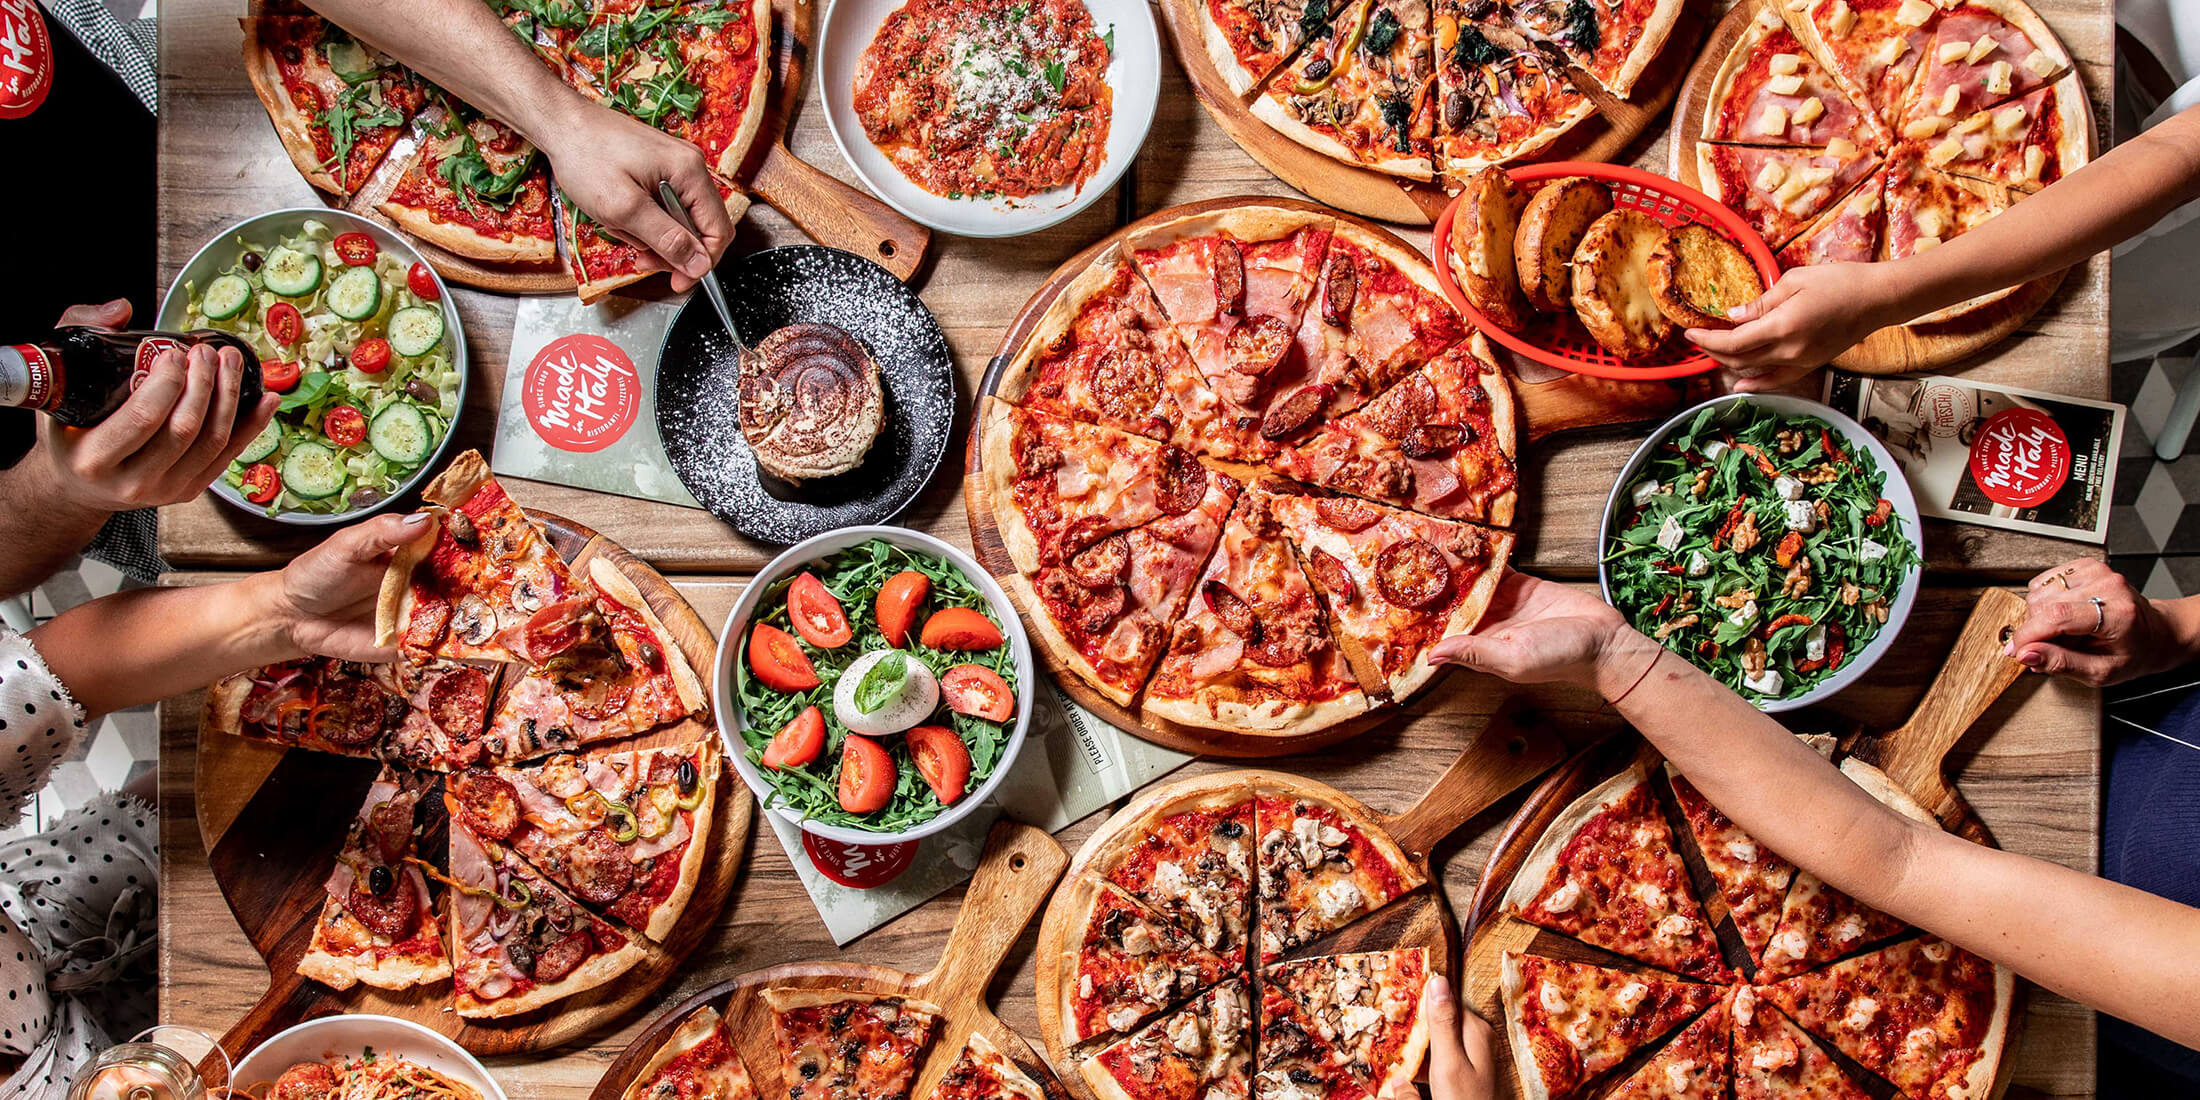 Made in Italy is an Italian restaurant Pyrmont serving pizza and pasta including take away.